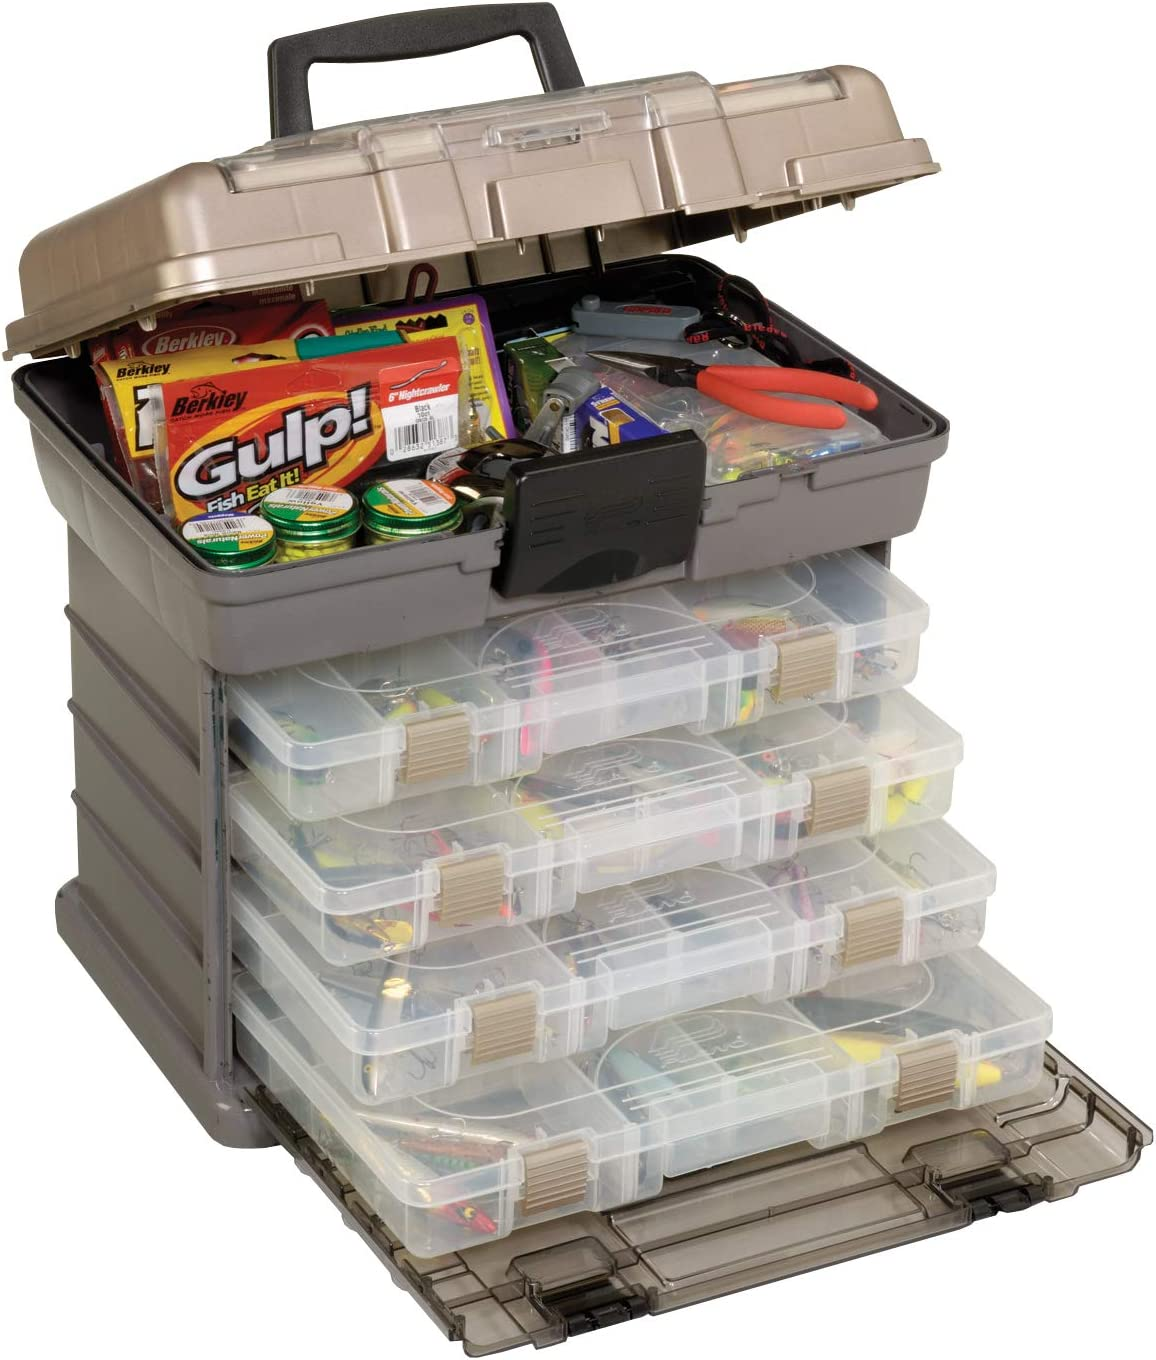 """Plano 137401 By Rack System 3700 Size Tackle Box, Multi, 16"""" X 12"""" X 17.25"""" 6lbs : Fishing Tackle Boxes : Sports & Outdoors"""